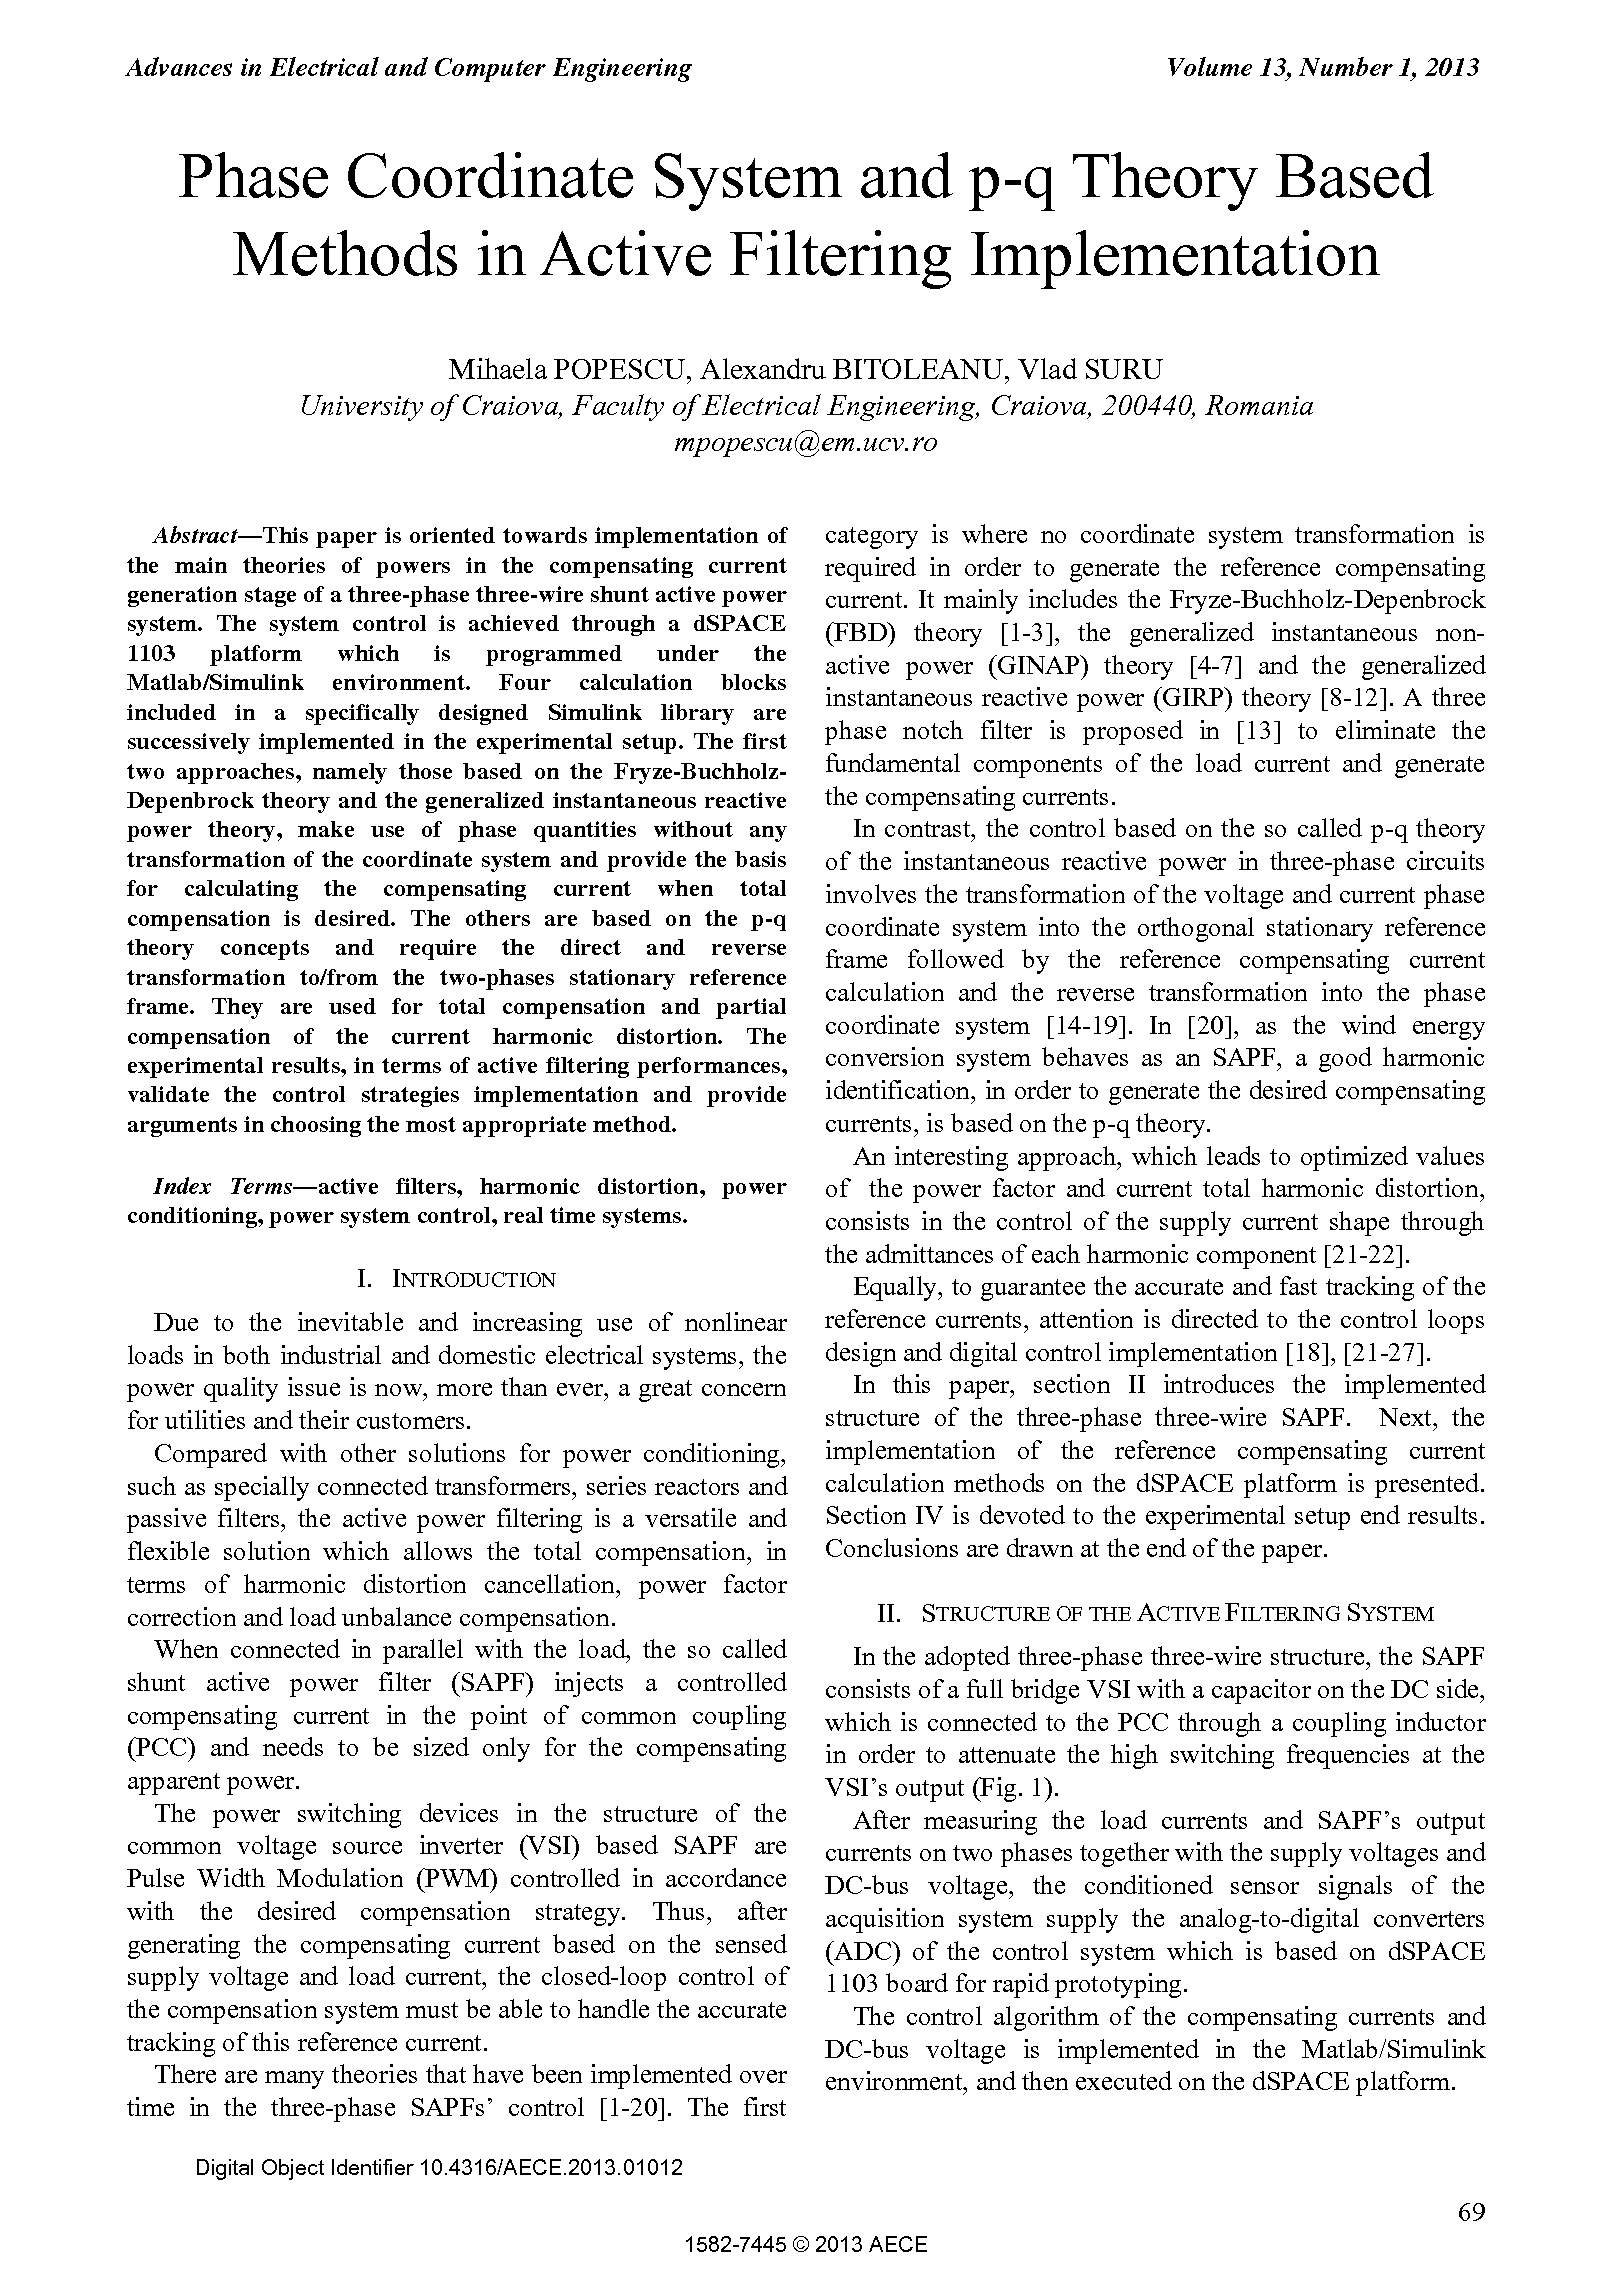 PDF Quickview for paper with DOI:10.4316/AECE.2013.01012